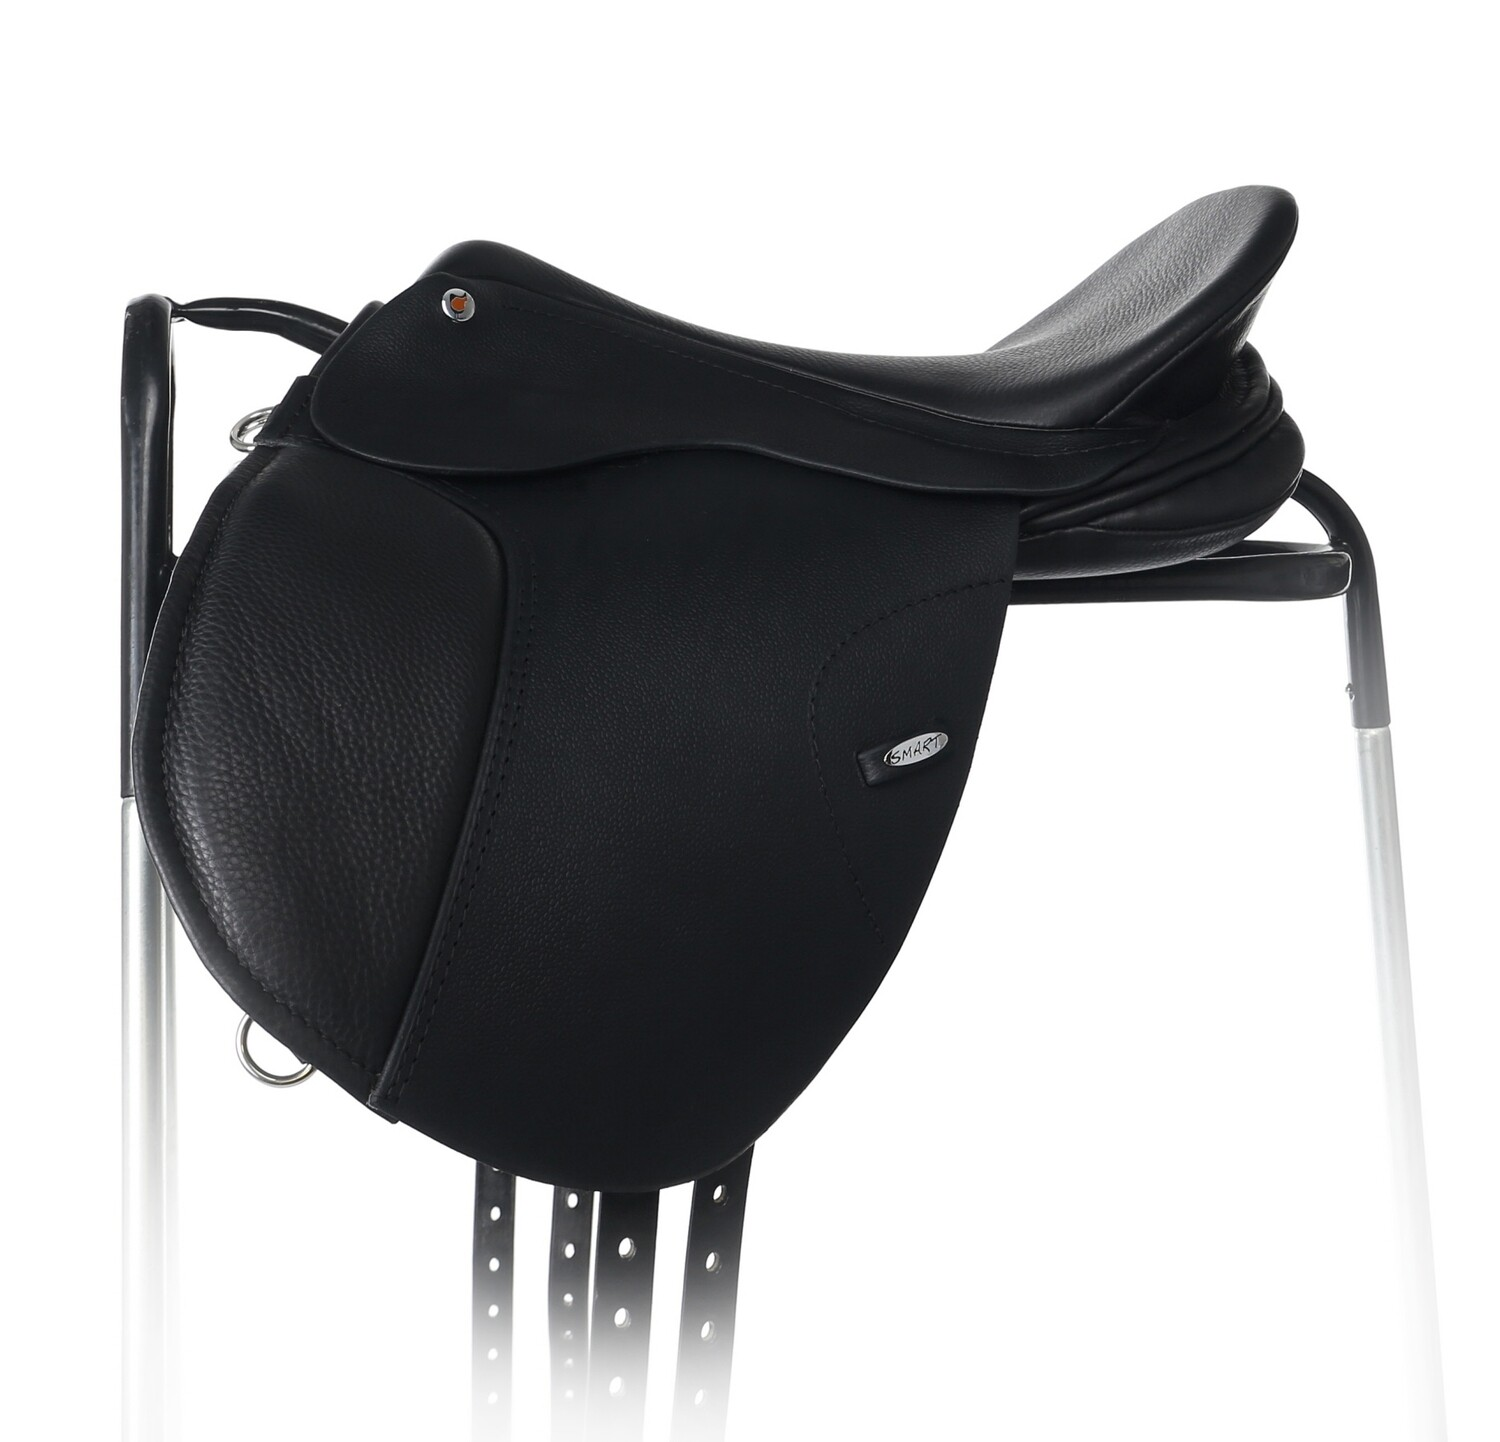 SMART PRO Saddle Range